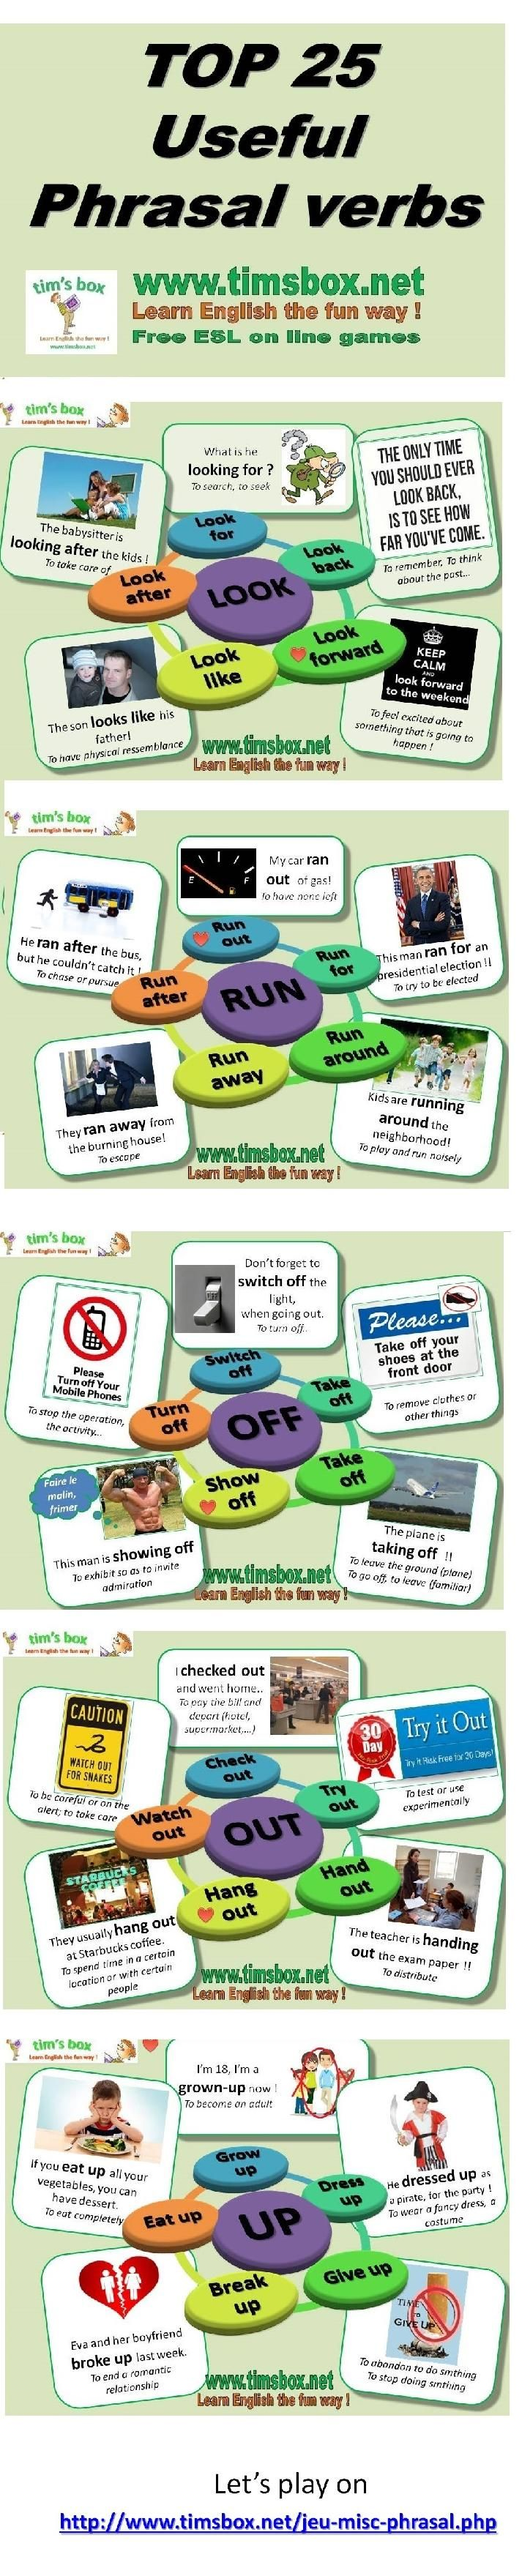 top 25 useful phrasal verbs -         Repinned by Chesapeake College Adult Ed. We offer free classes on the Eastern Shore of MD to help you earn your GED - H.S. Diploma or Learn English (ESL) .   For GED classes contact Danielle Thomas 410-829-6043 dthomas@chesapeake.edu  For ESL classes contact Karen Luceti - 410-443-1163  Kluceti@chesapeake.edu .  www.chesapeake.edu